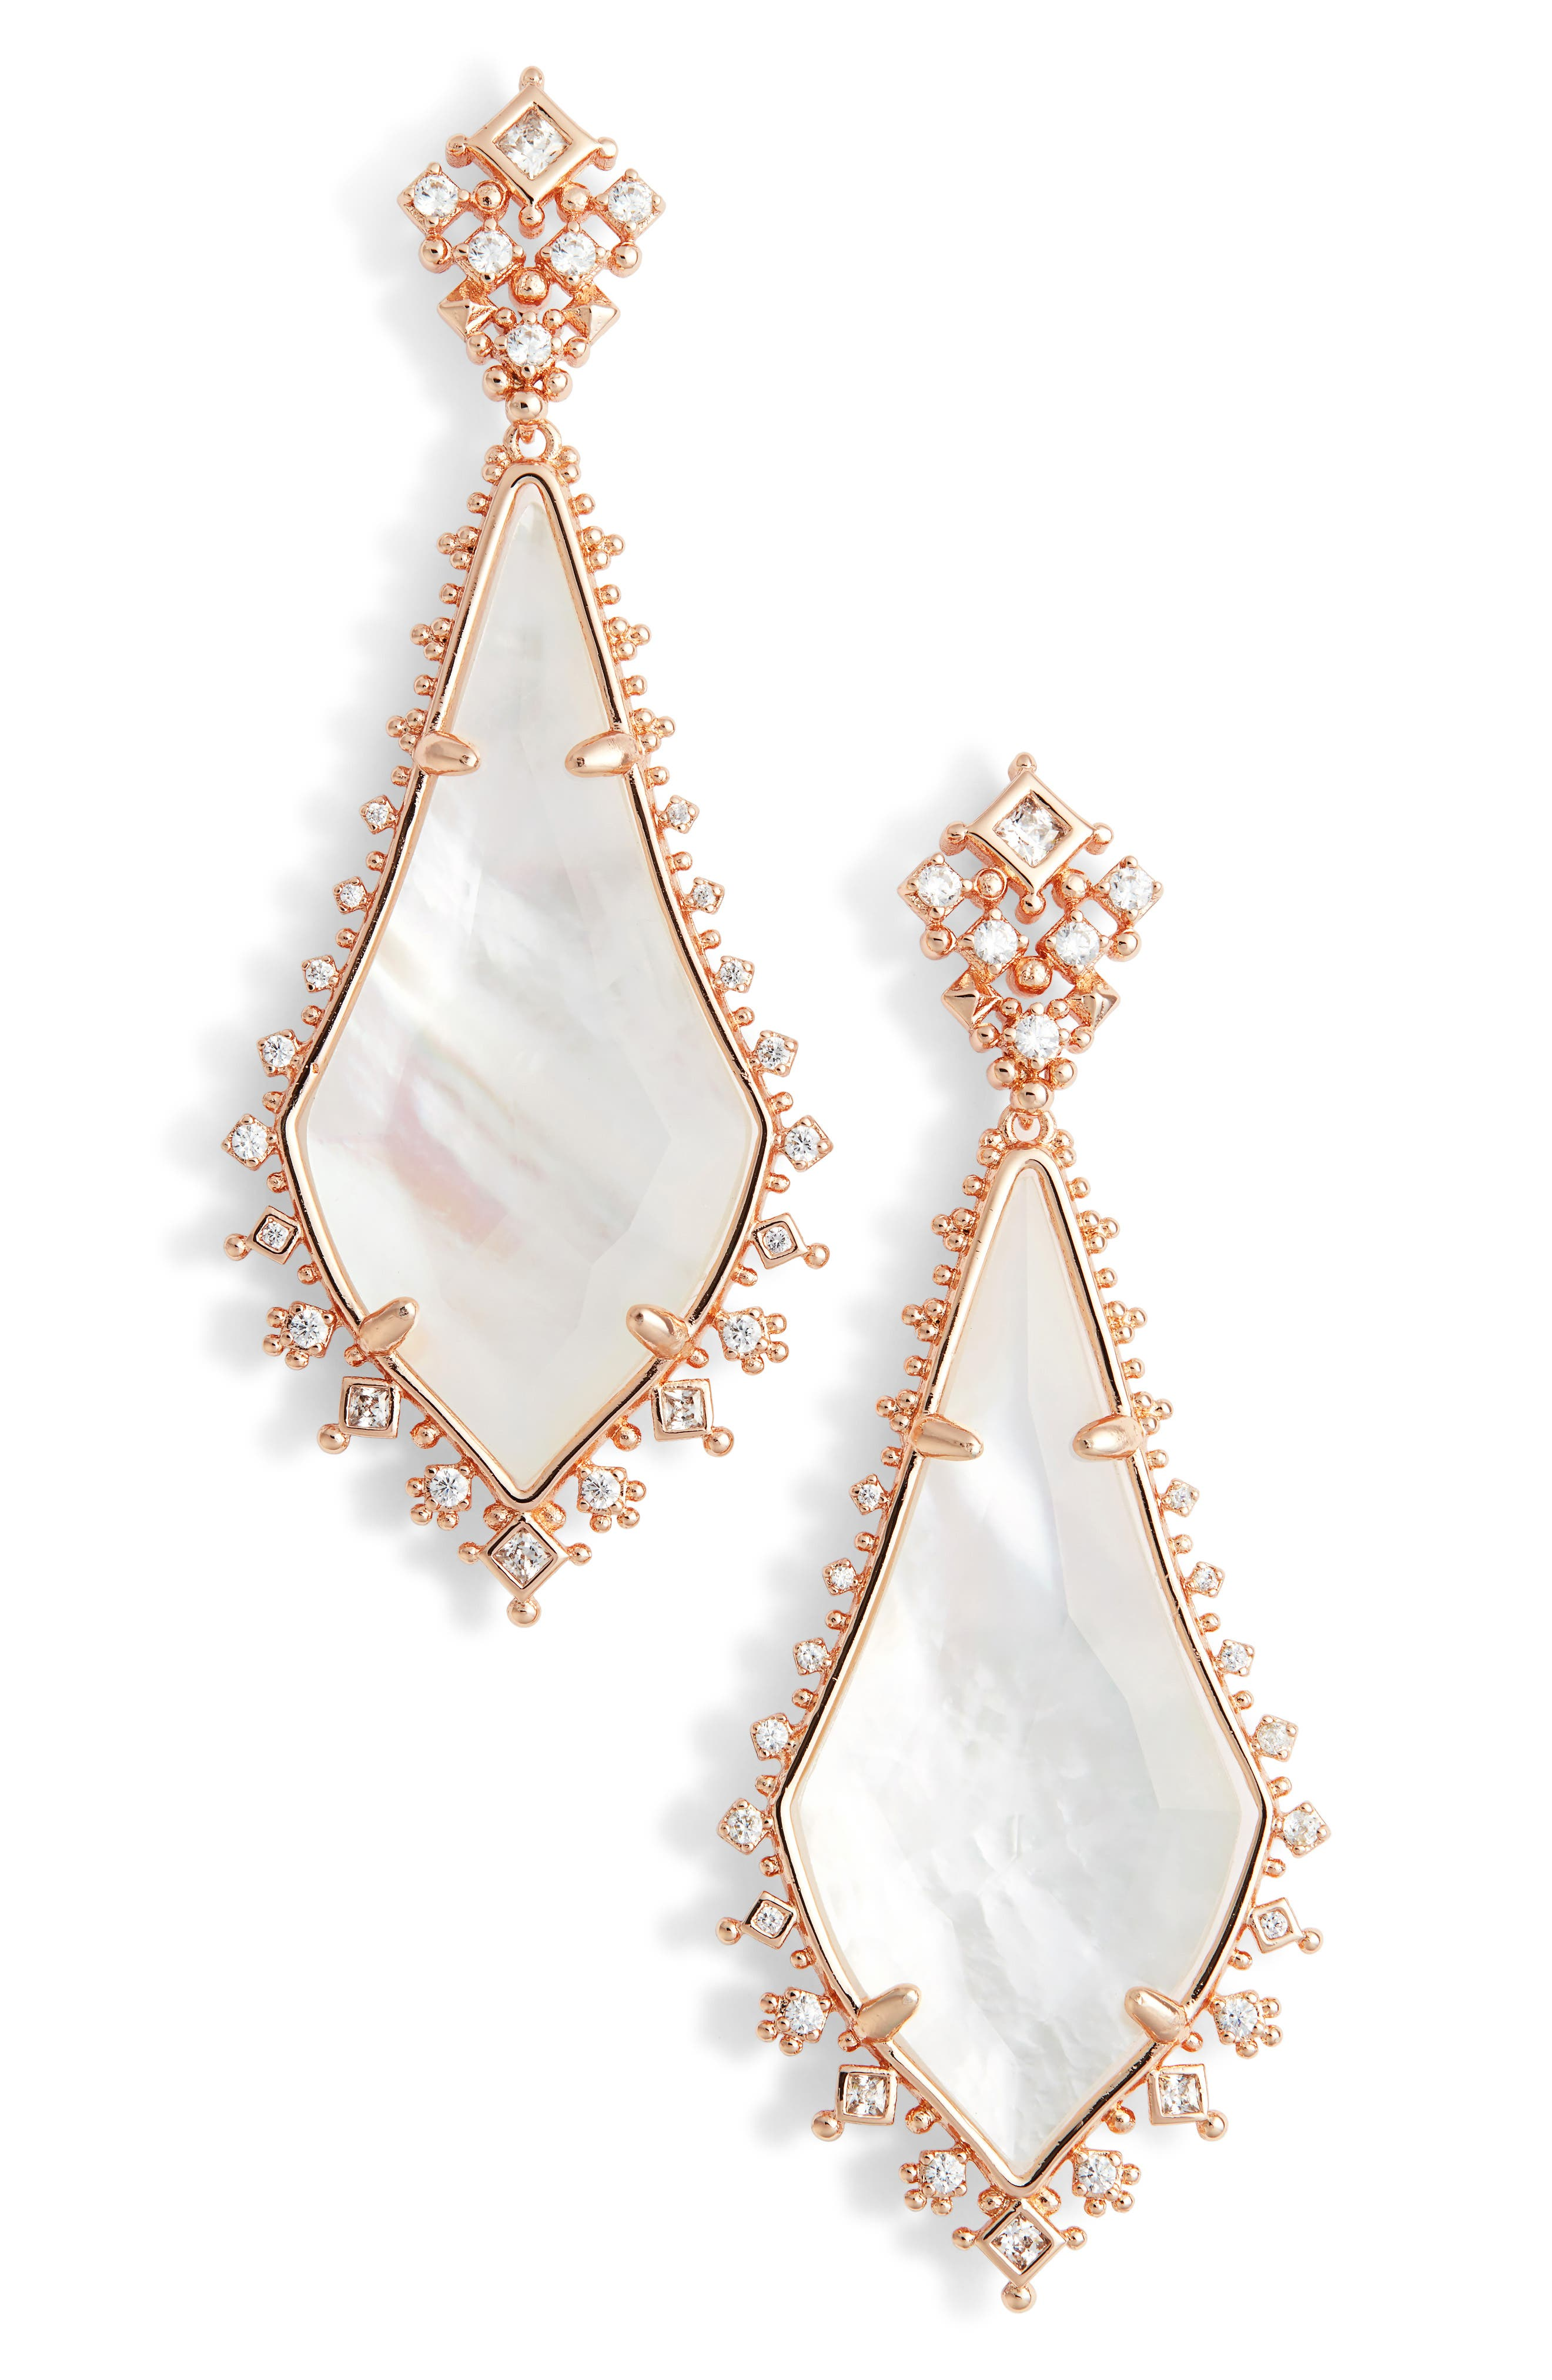 Martha Mother of Pearl Drop Earrings,                         Main,                         color, Rose Gold